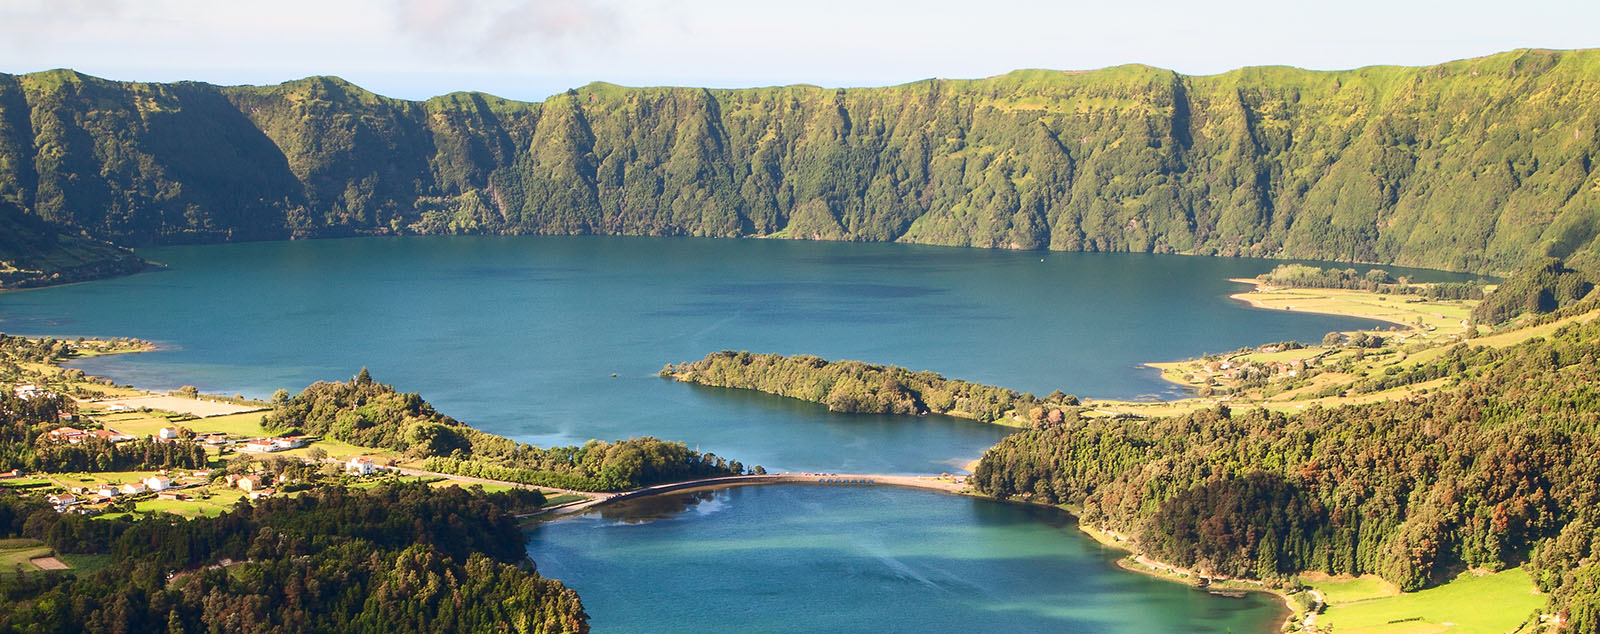 A volcanic crater lake. Huge steep cliffs lead down to the water. The landscape is dotted with dense green forest.